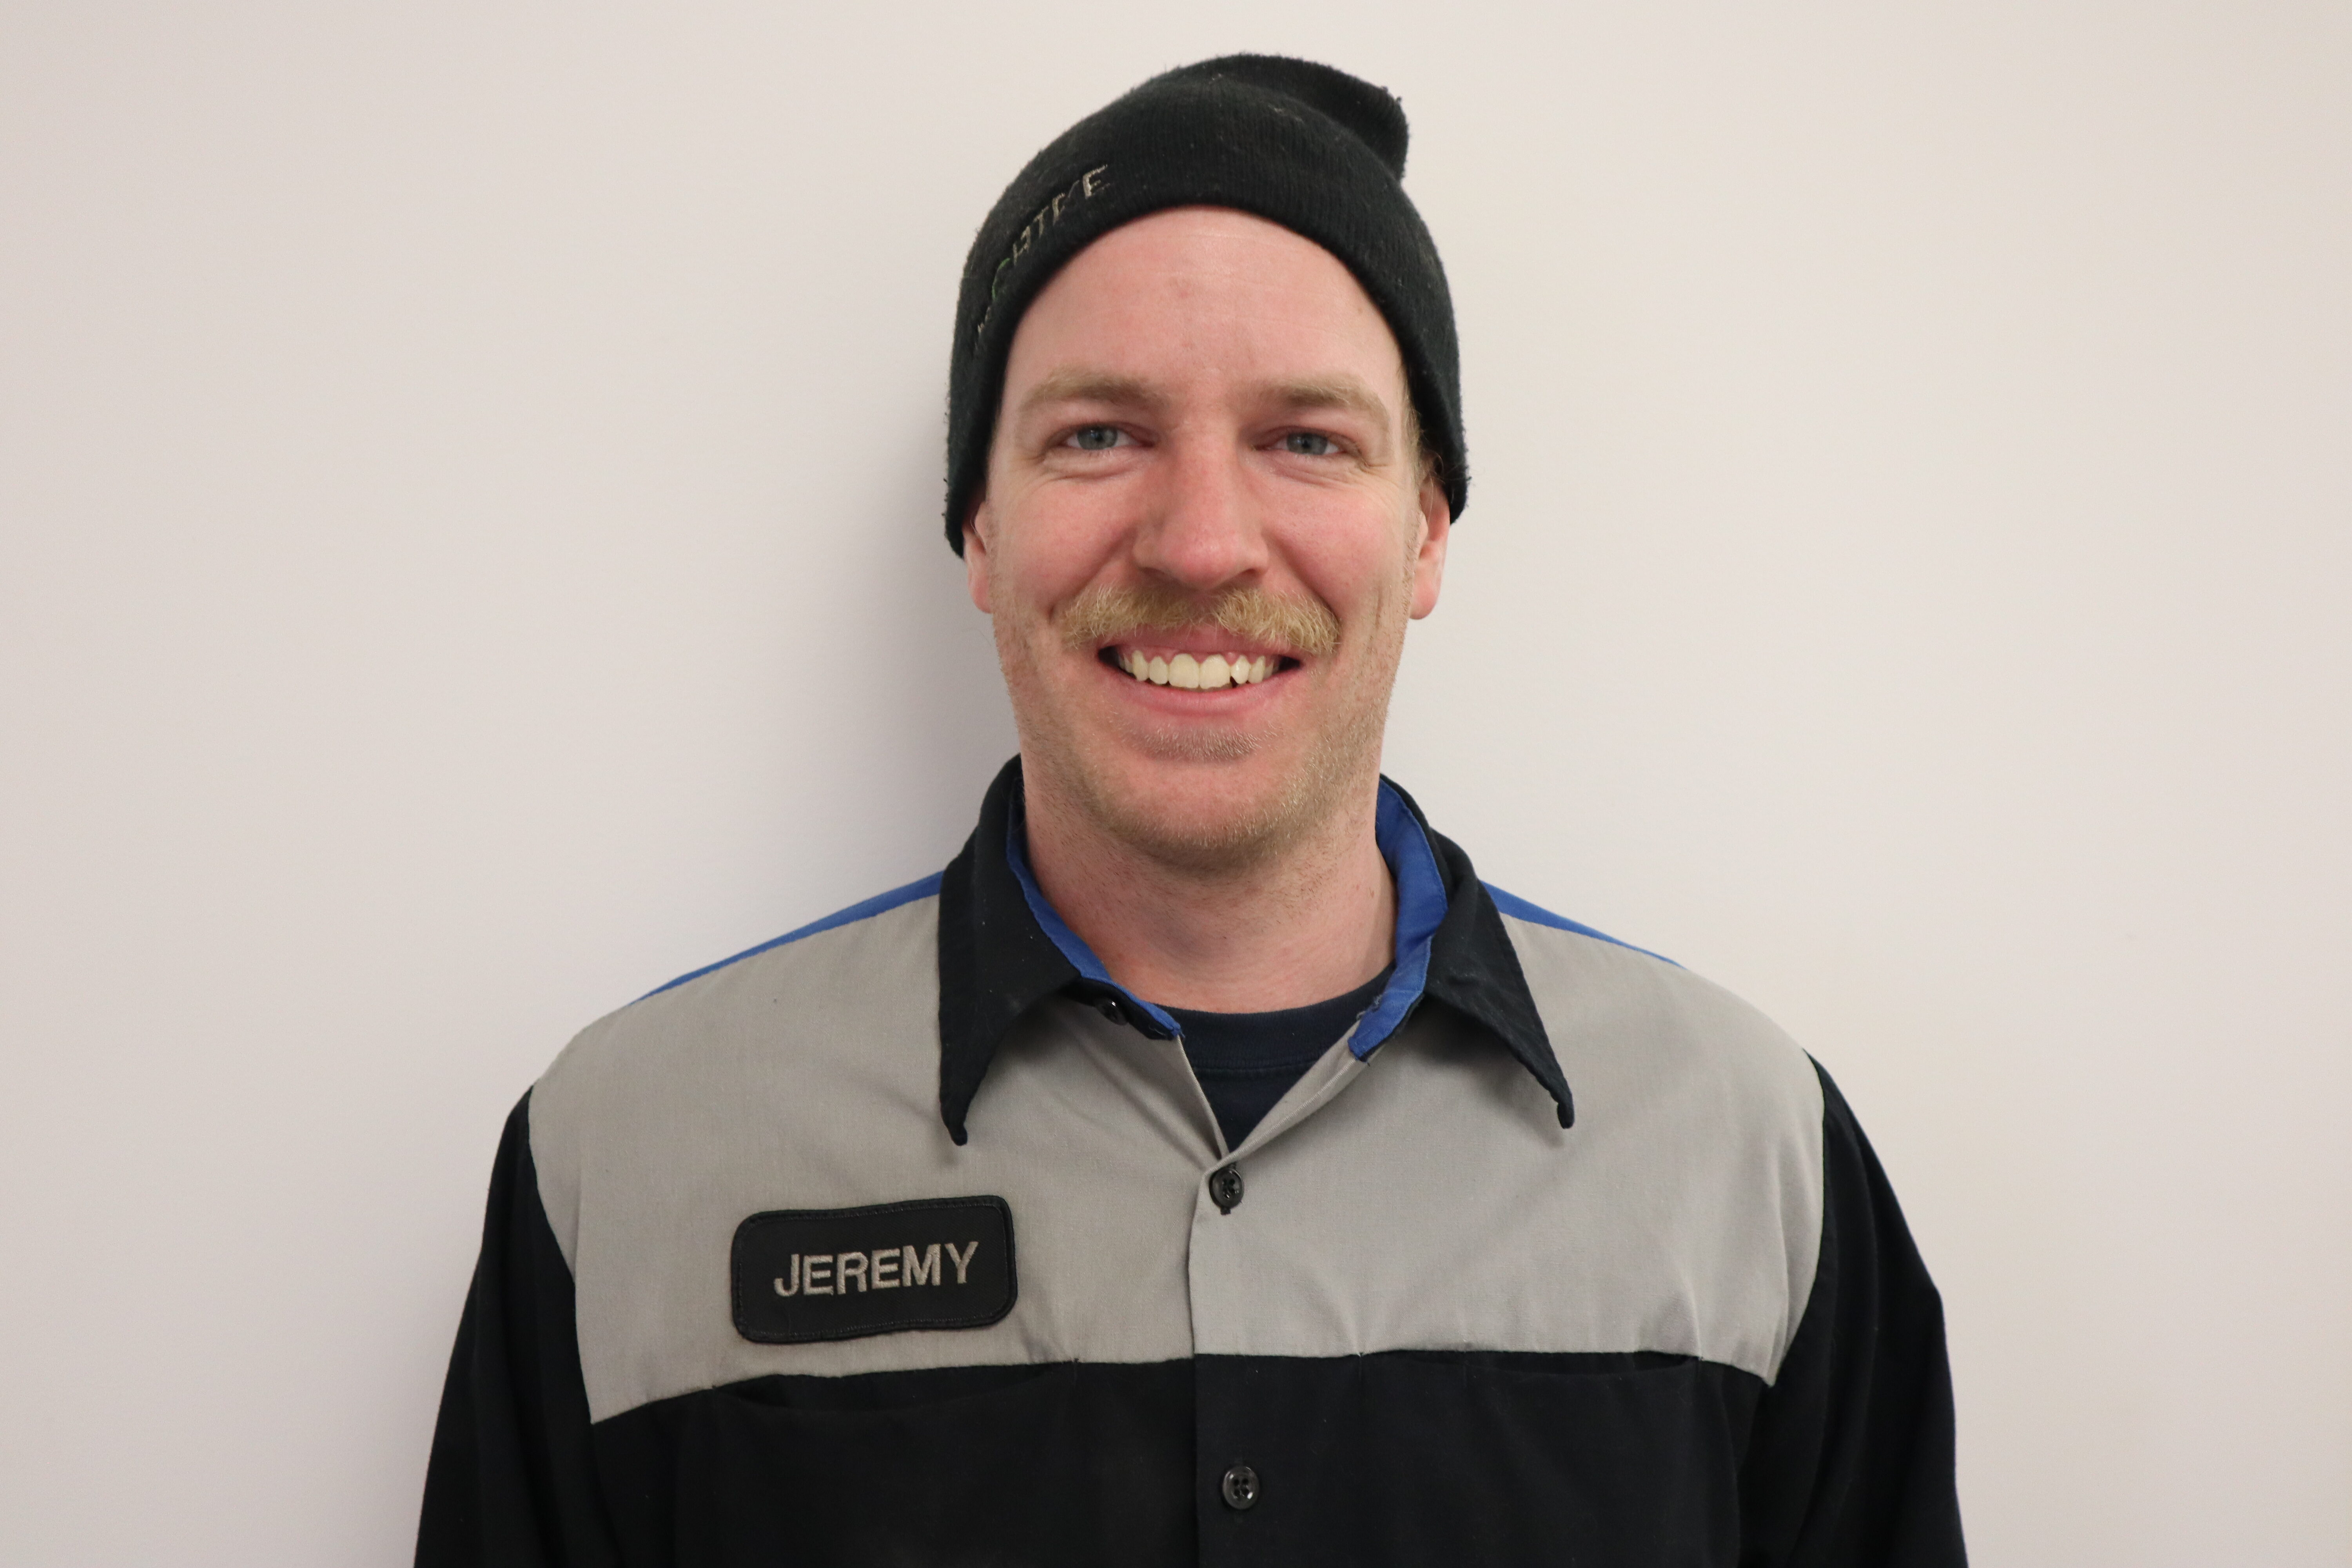 Jeremy Meyer - Automotive Technician